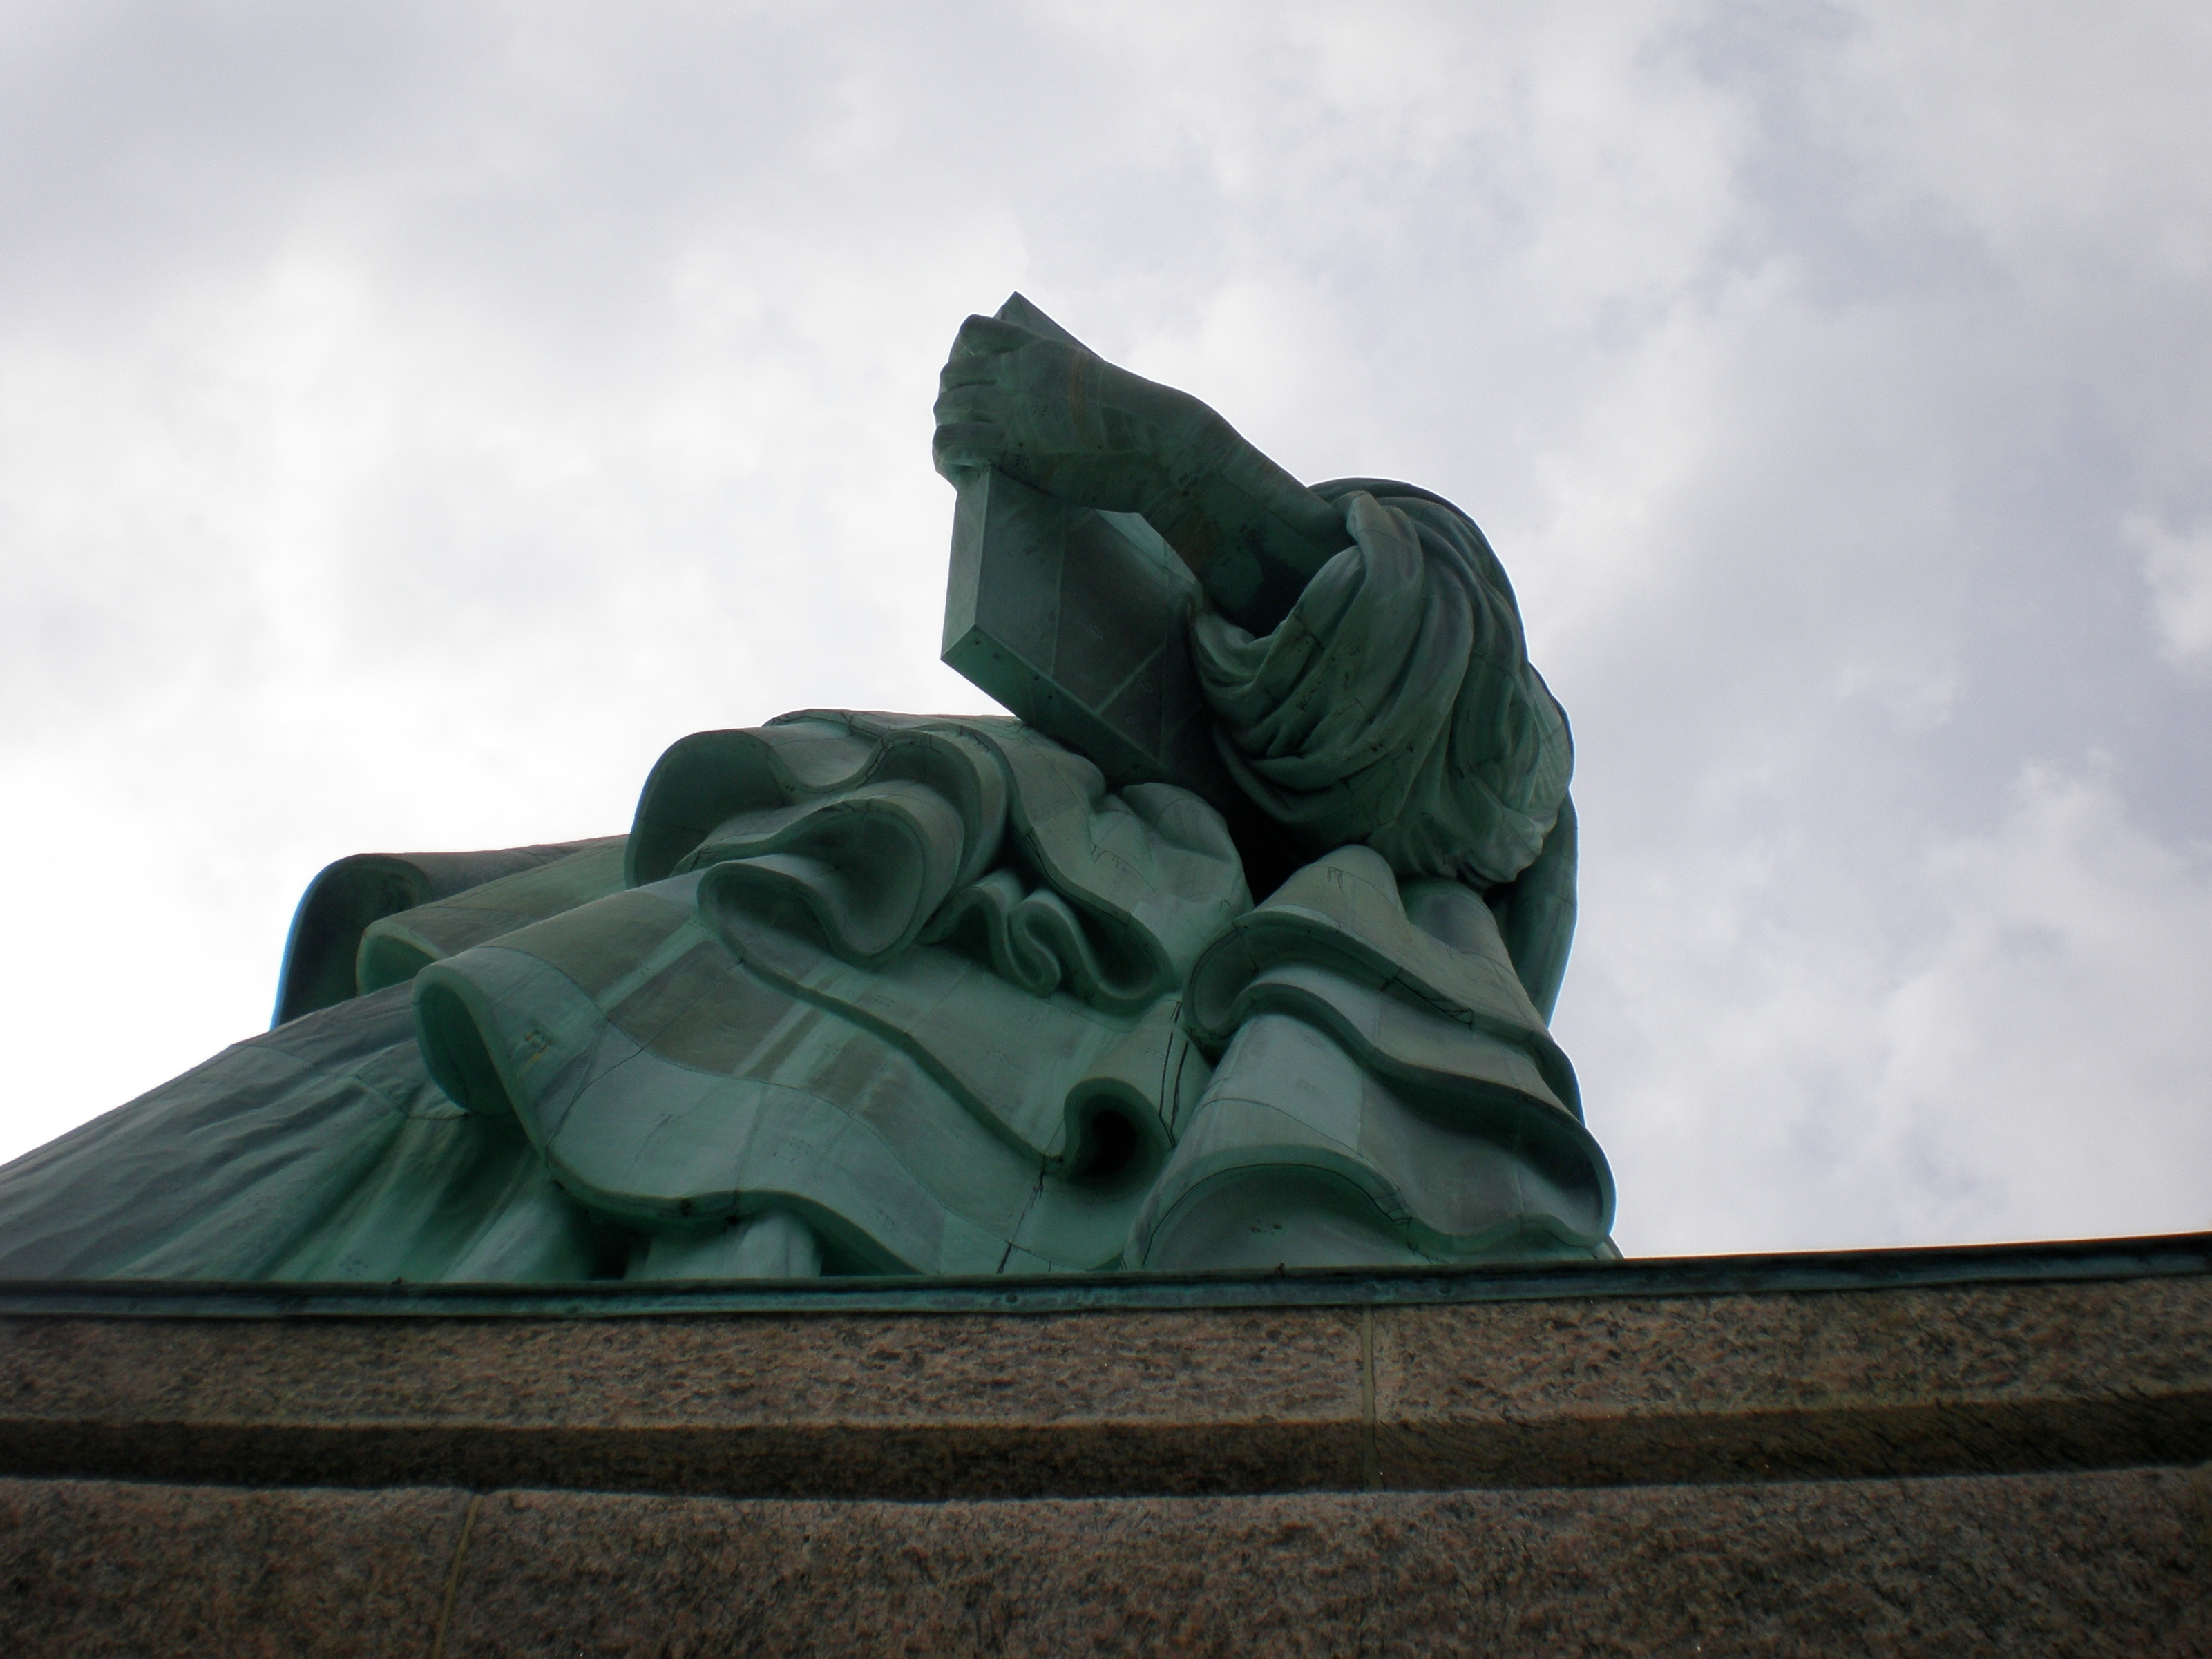 Statue Of Liberty Upskirt